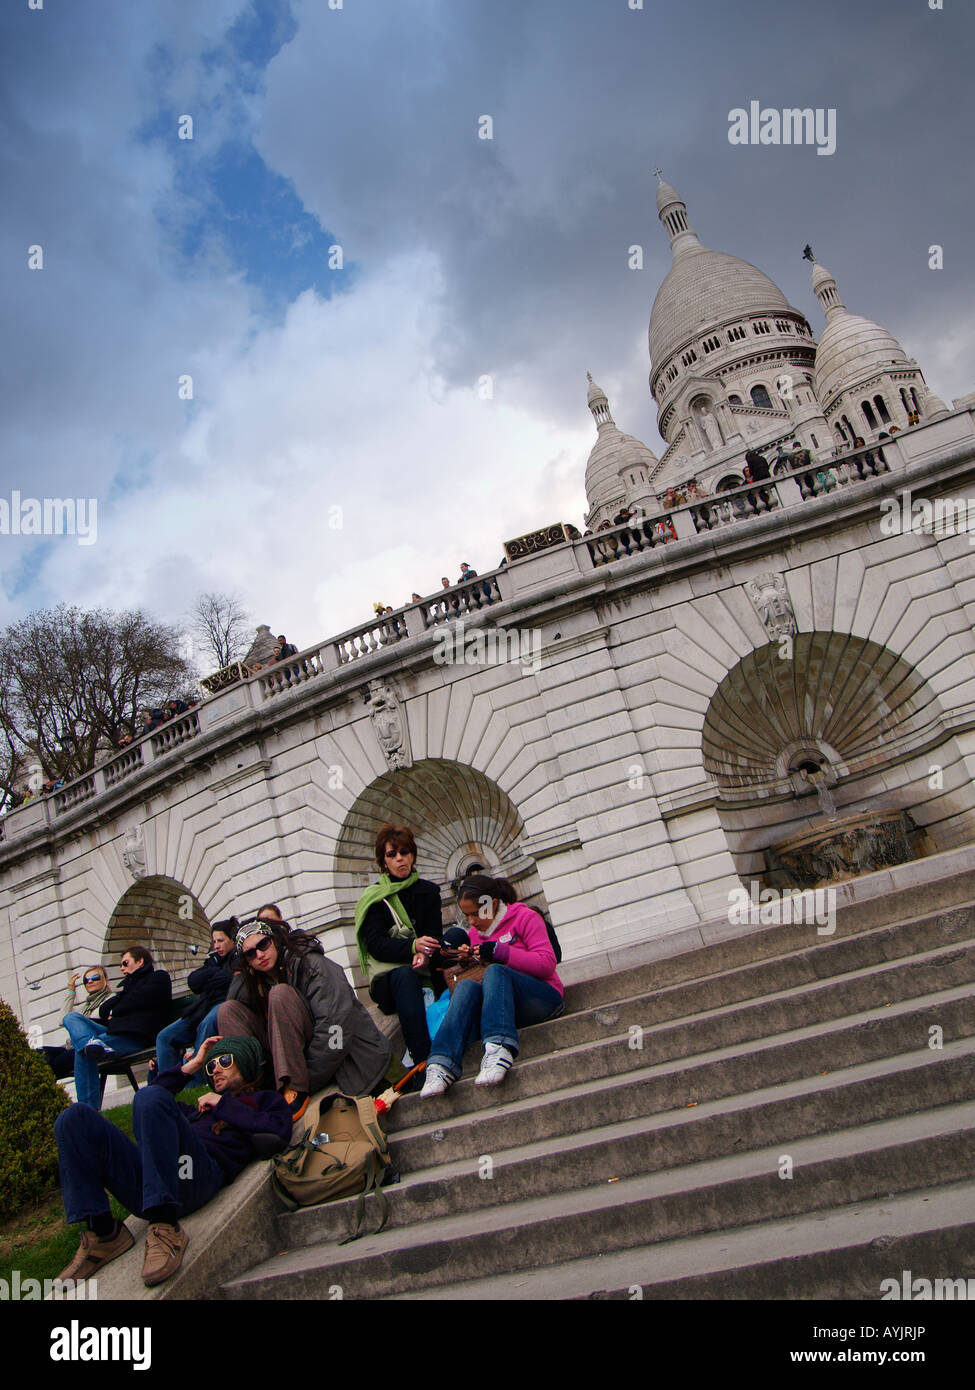 People on the steps of the famous Sacre Coeur church in Montmartre Paris France - Stock Image